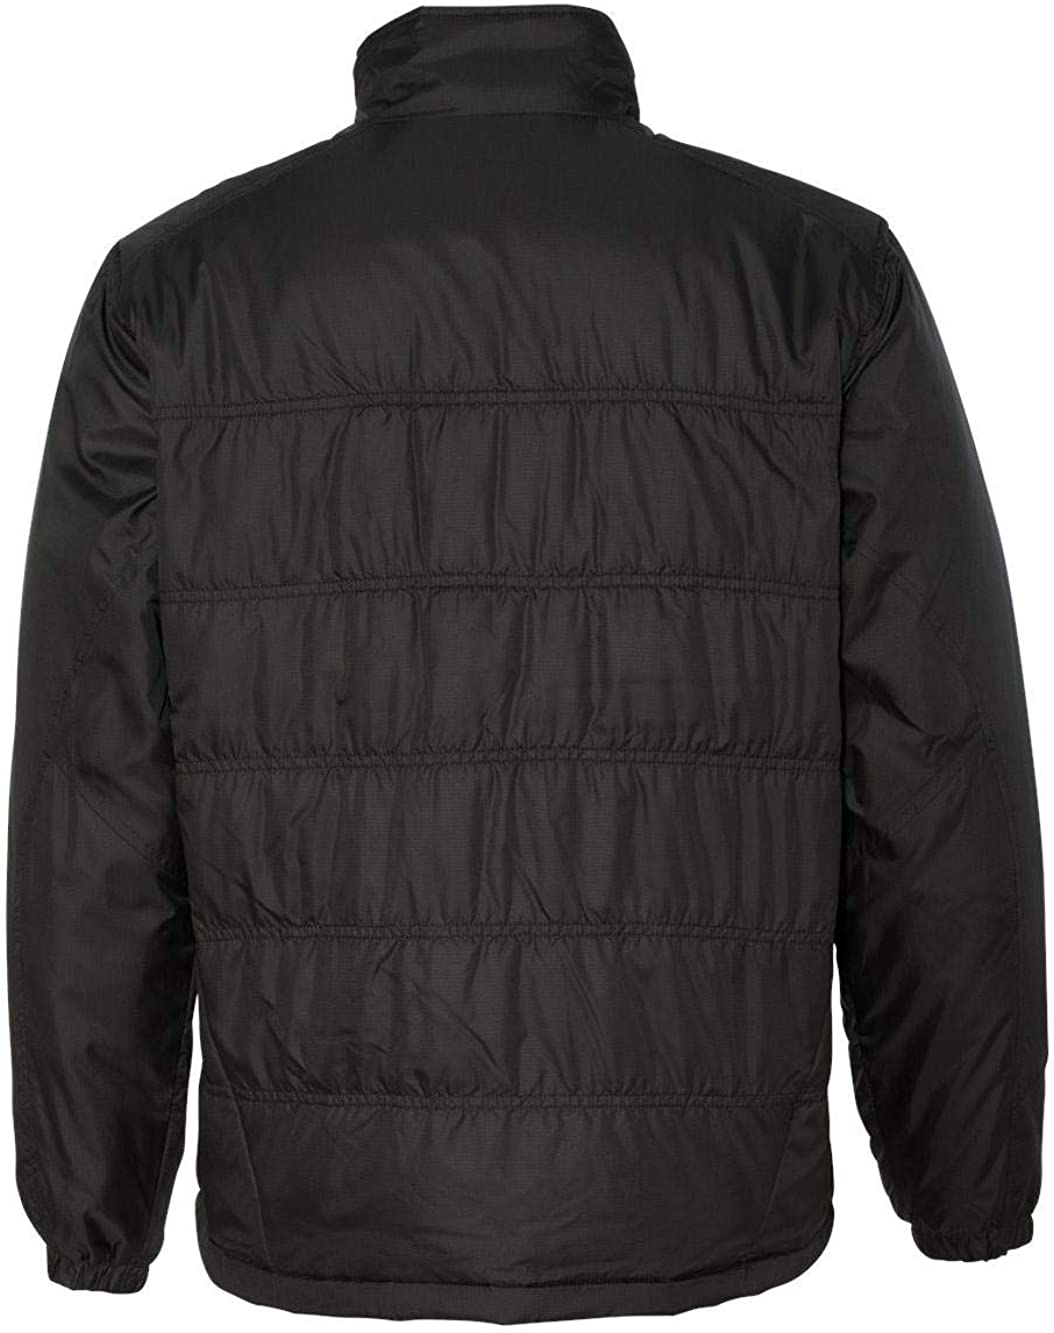 DRI Duck 5321 Eclipse Thinsulate Lined Puffer Jacket